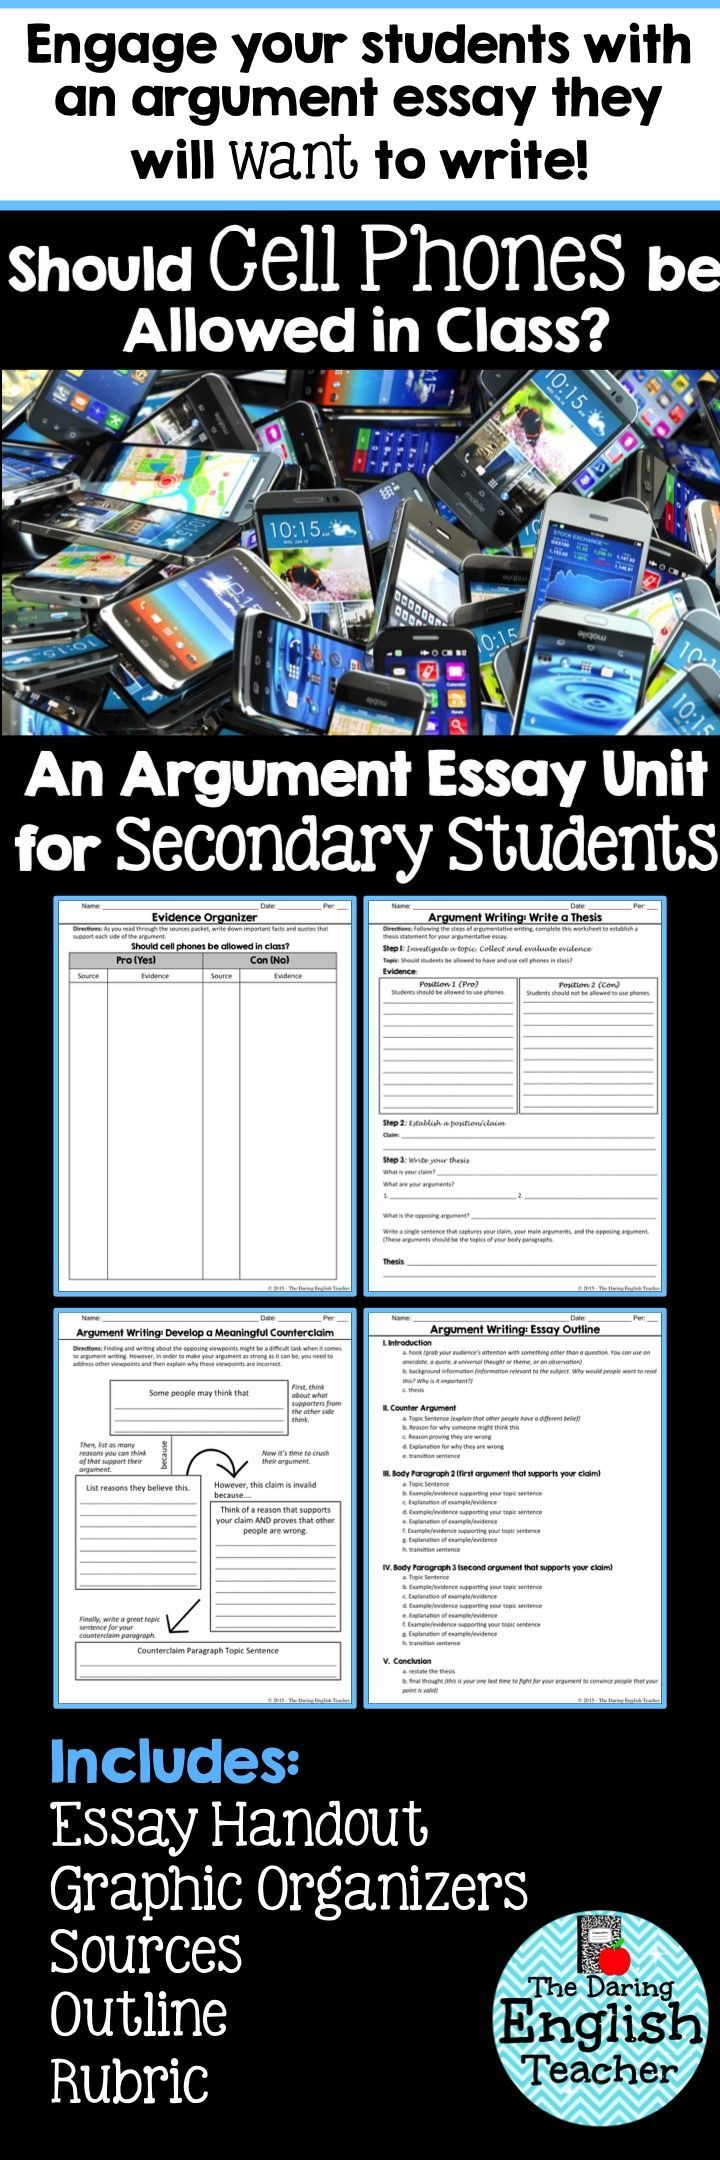 17 best ideas about argumentative writing thesis argument essay unit should cell phones be allowed in class